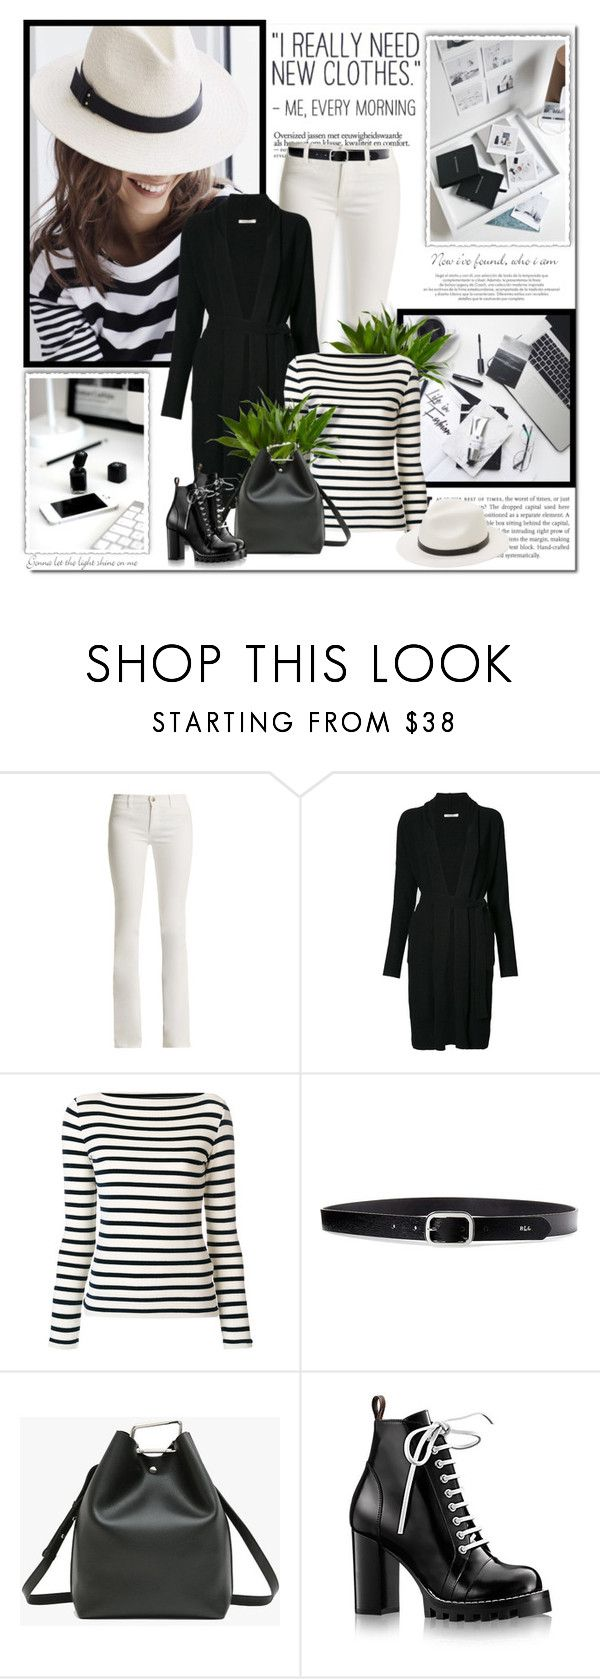 """I really need new clothes - me, every morning!!"" by lilly-2711 ❤ liked on Polyvore featuring Banana Republic, M.i.h Jeans, Mes Demoiselles..., Faith Connexion, Lauren Ralph Lauren and Saks Fifth Avenue"